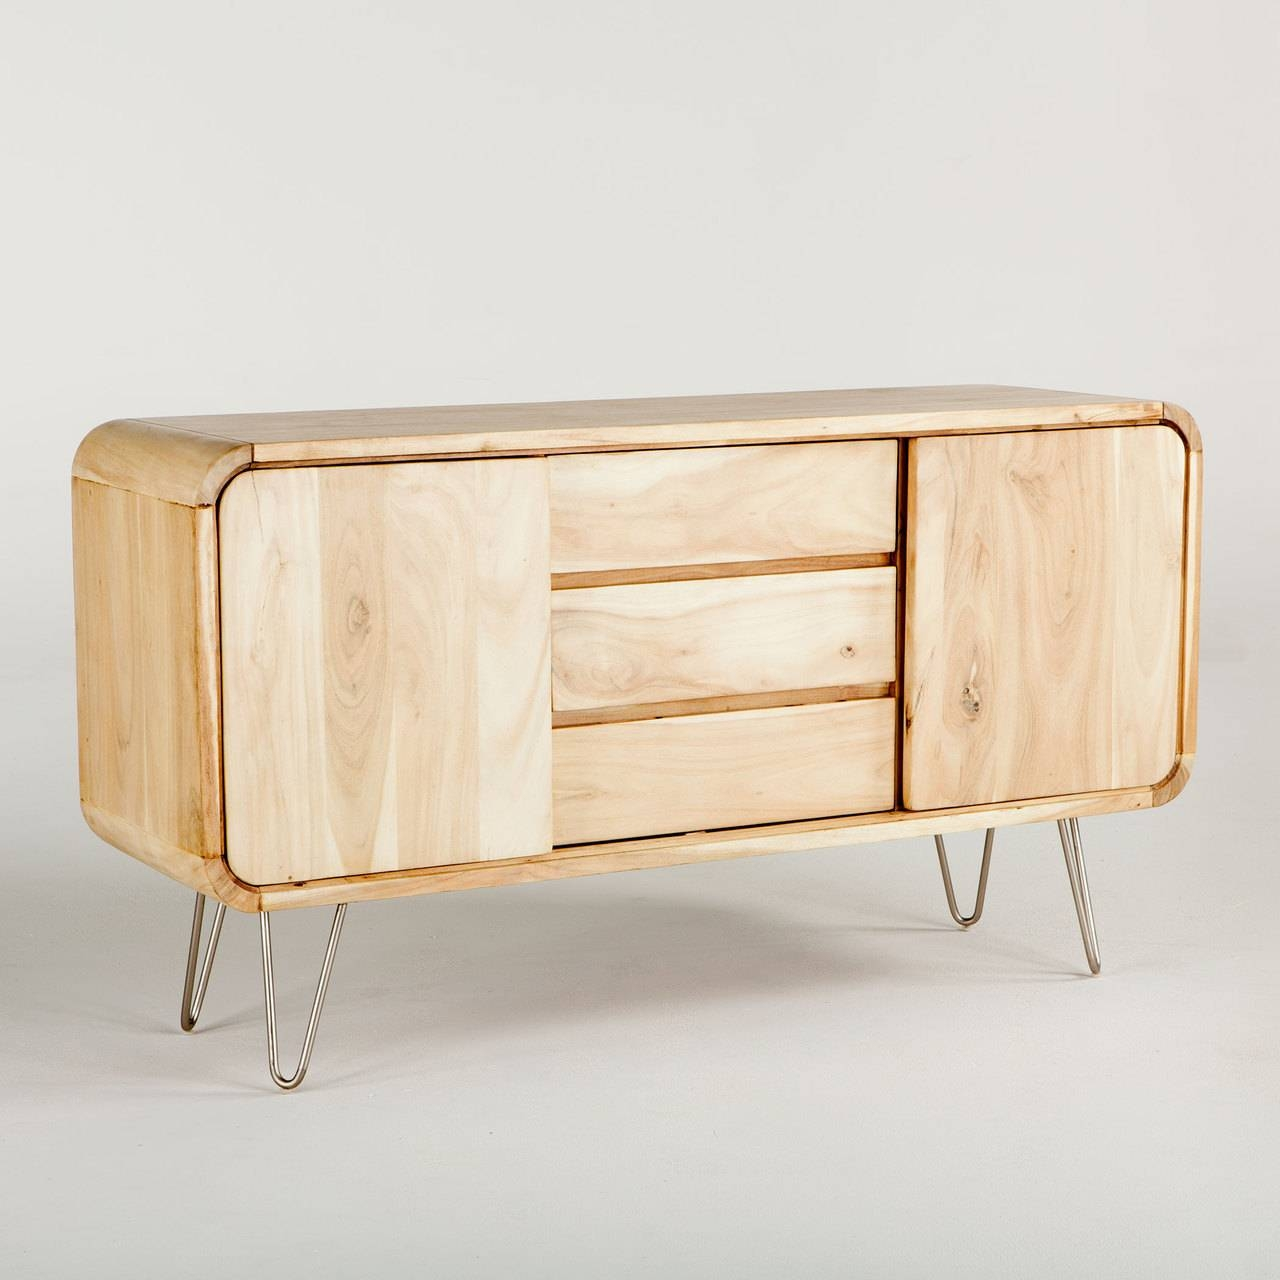 Vail Solid Wood Sideboard In Natural W/ Steel Legs – Simply Austin With Regard To Real Wood Sideboard (View 12 of 20)